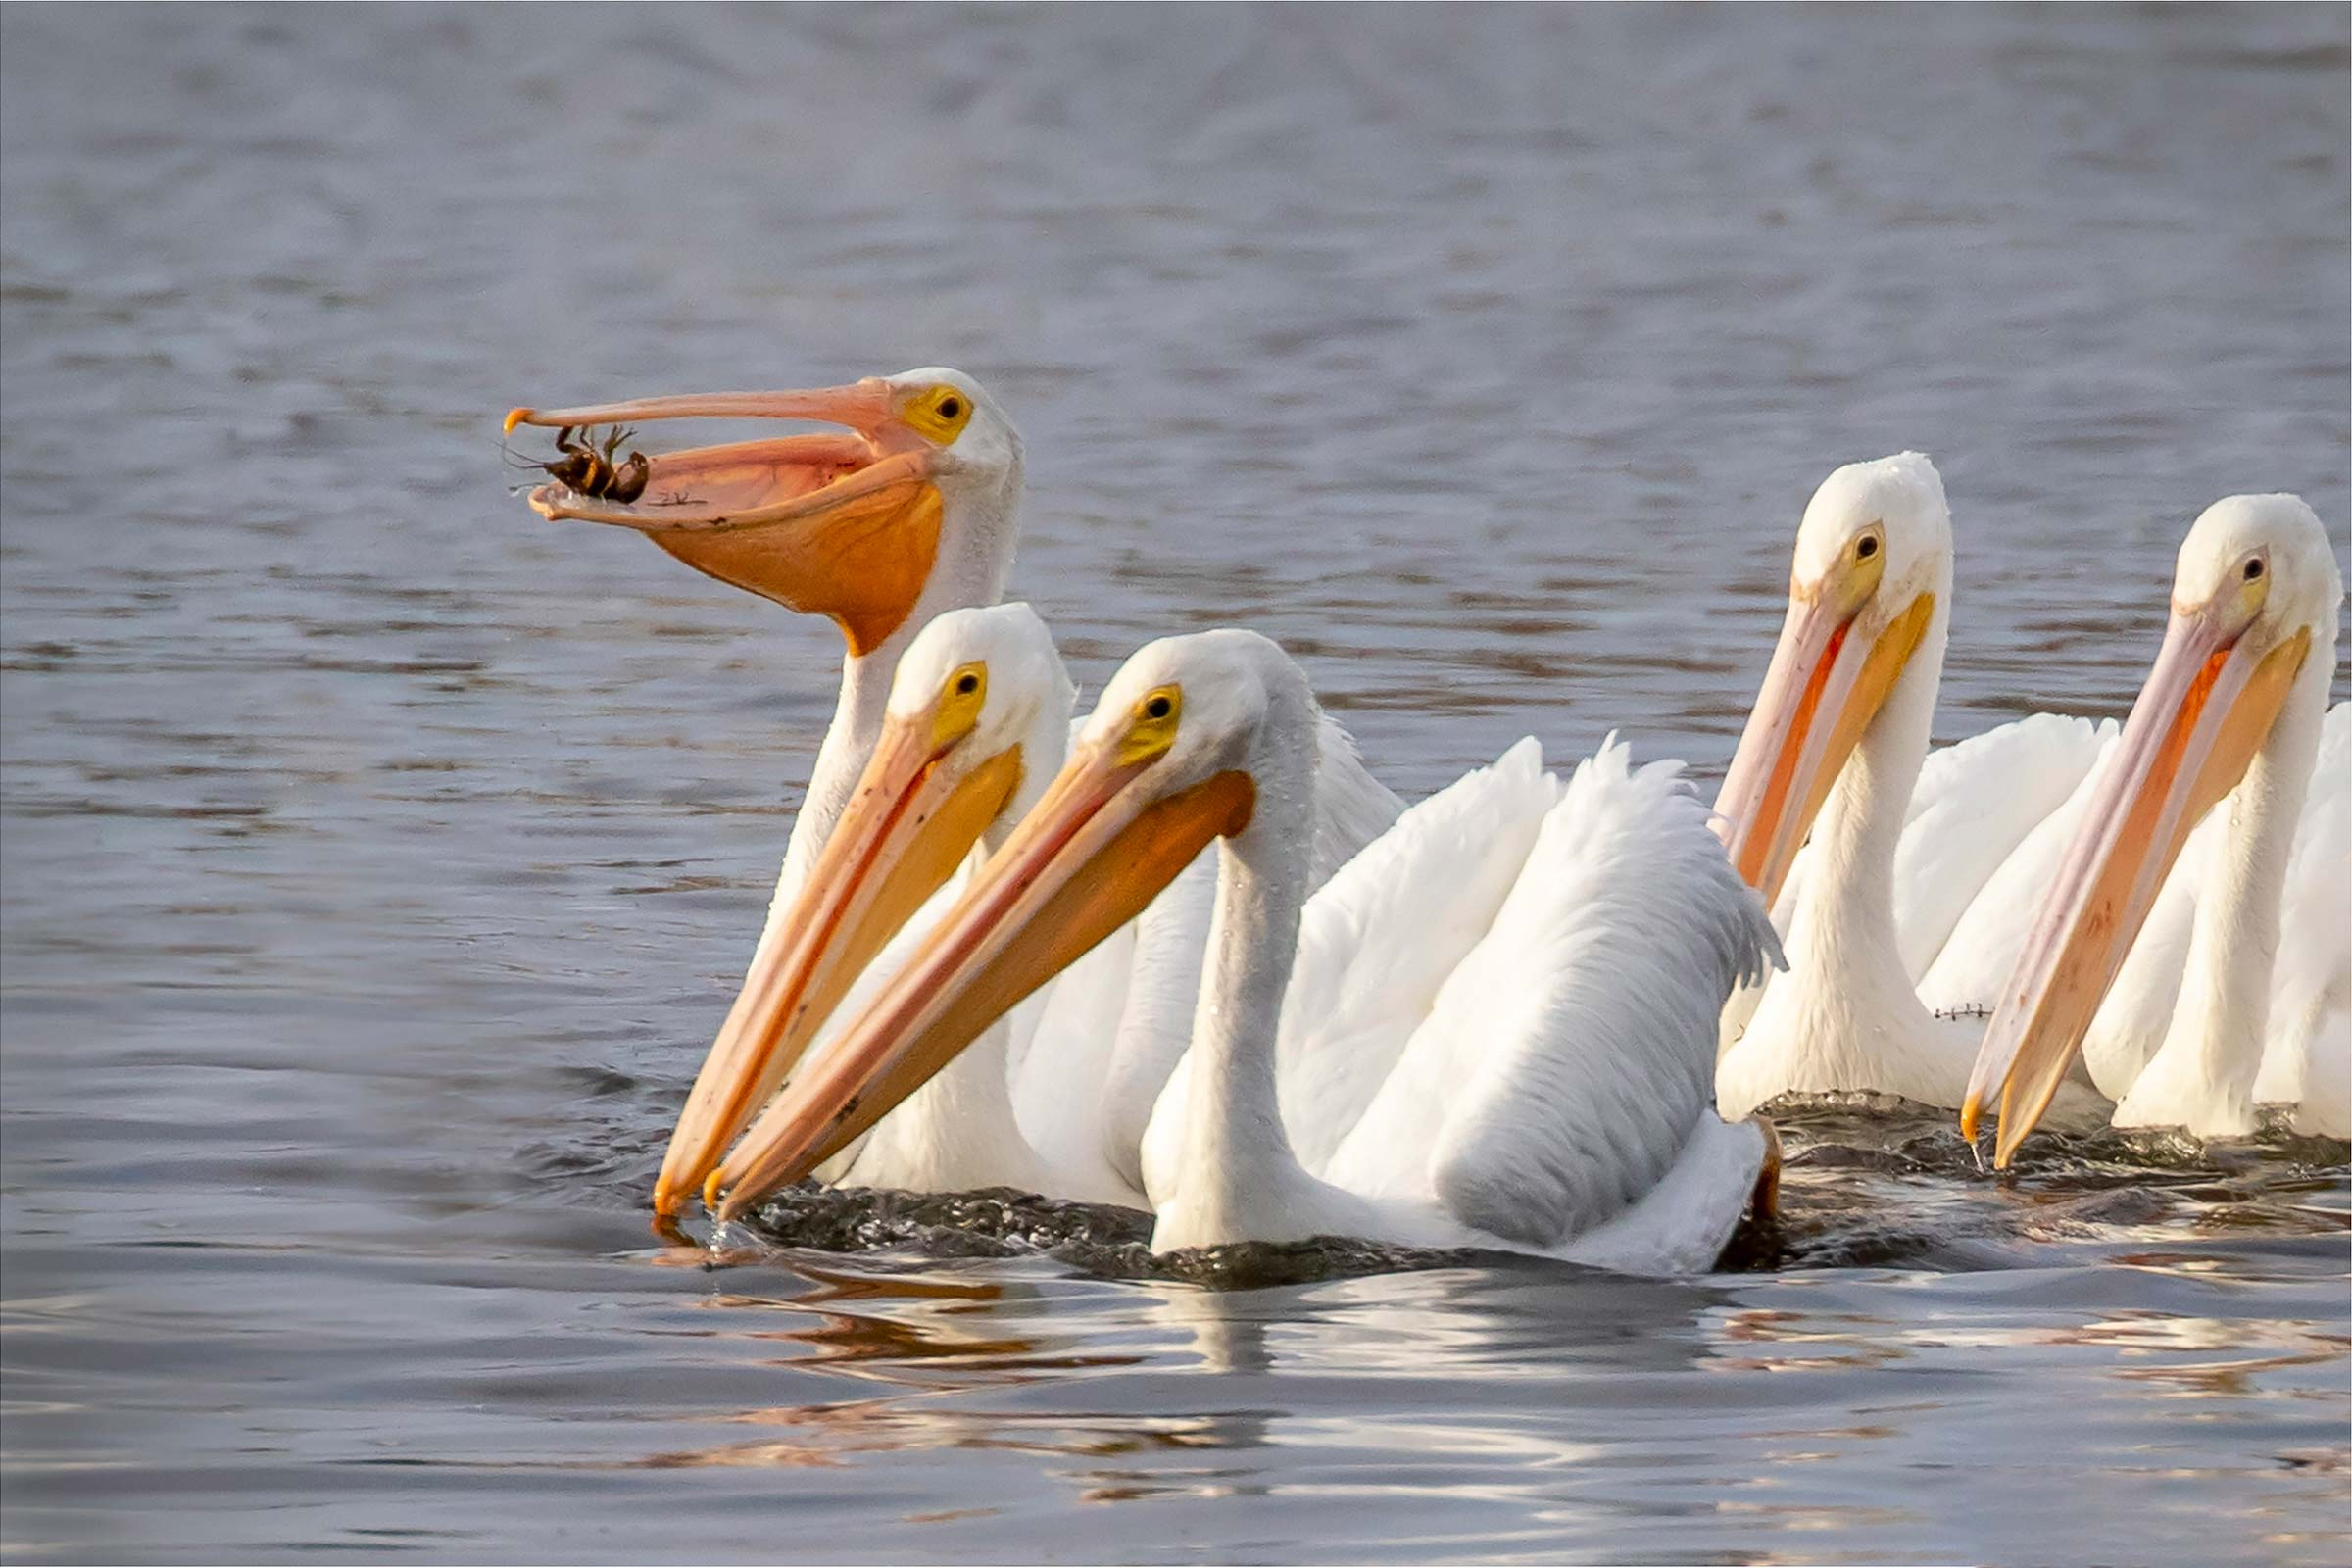 Group of pelicans in water image